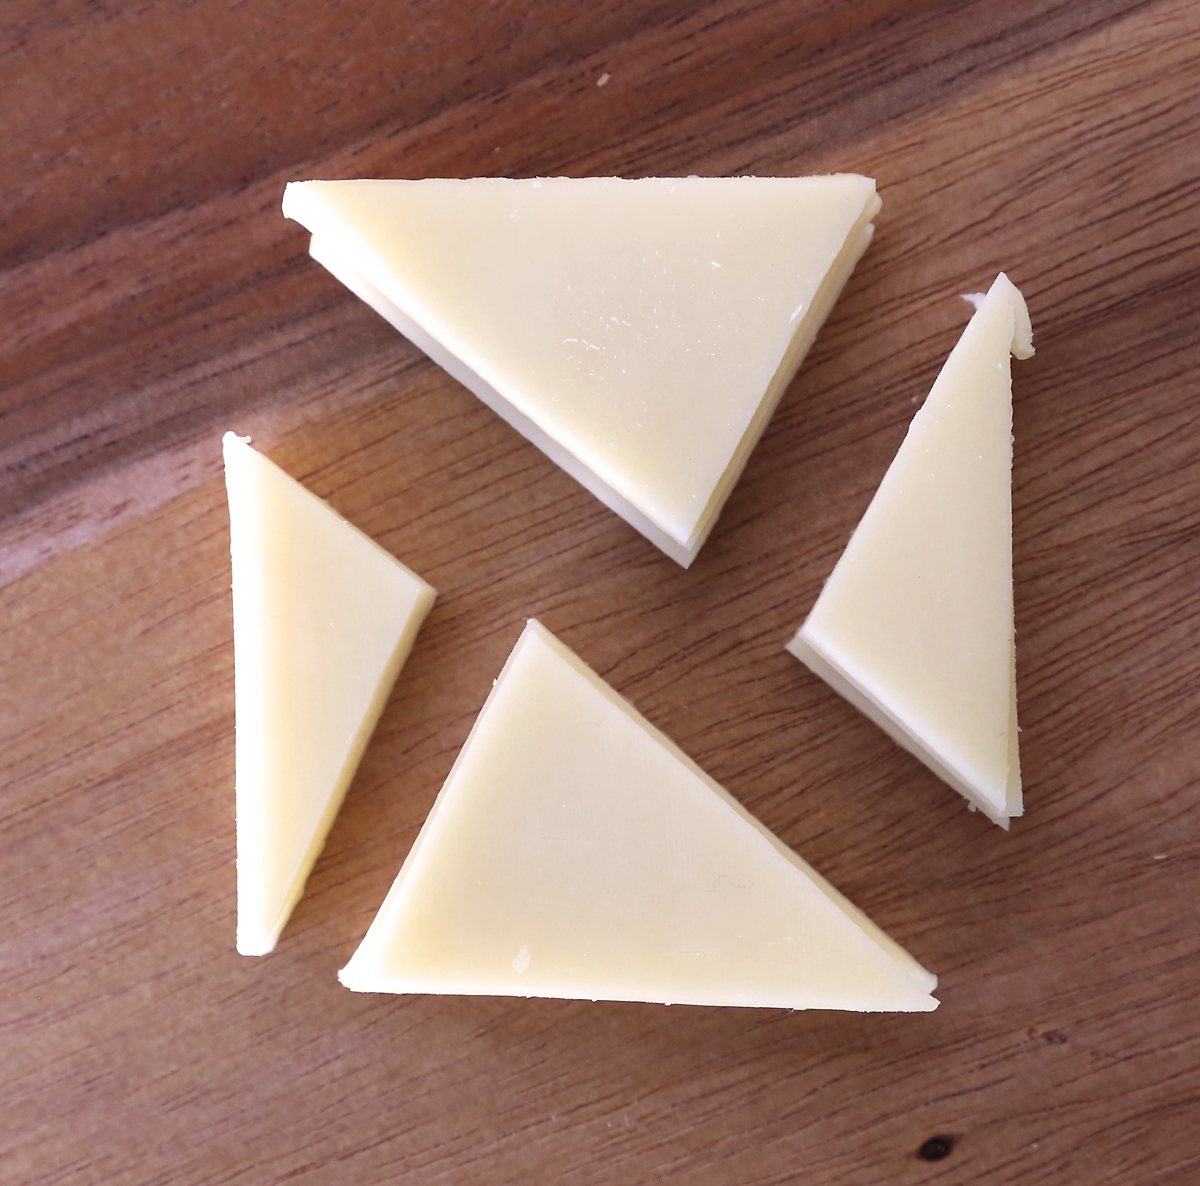 Cheese triangles cut again into small triangles